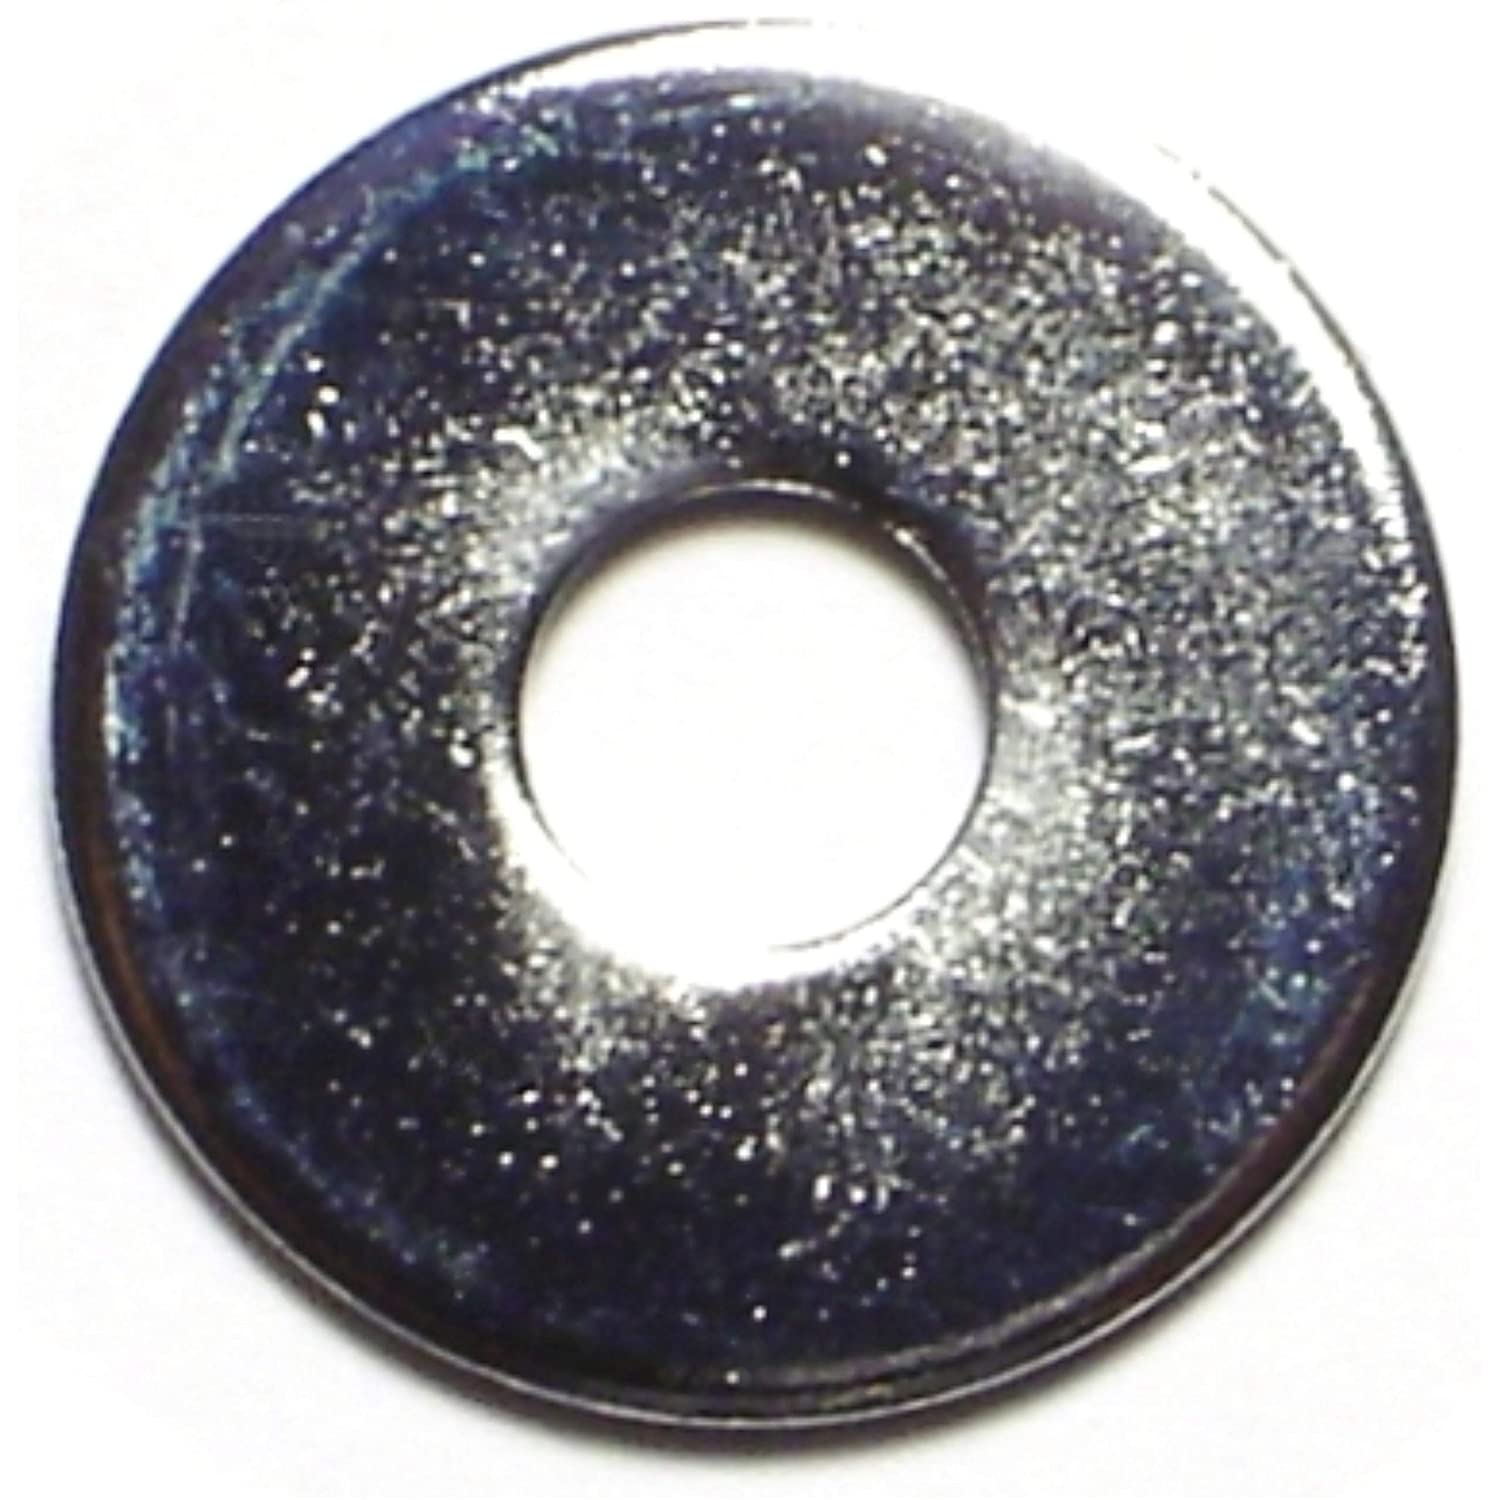 3//8 x 7//8 Bolt Size 0.687-0.692 ID .868-.873 OD Shim Flat Washer Pack of 25 Pack of 25 0.020 Thick Accurate Manufacturing Z9887-20 18-8 Stainless Steel 3//8 x 7//8 Bolt Size 0.687-0.692 ID .868-.873 OD 0.020 Thick